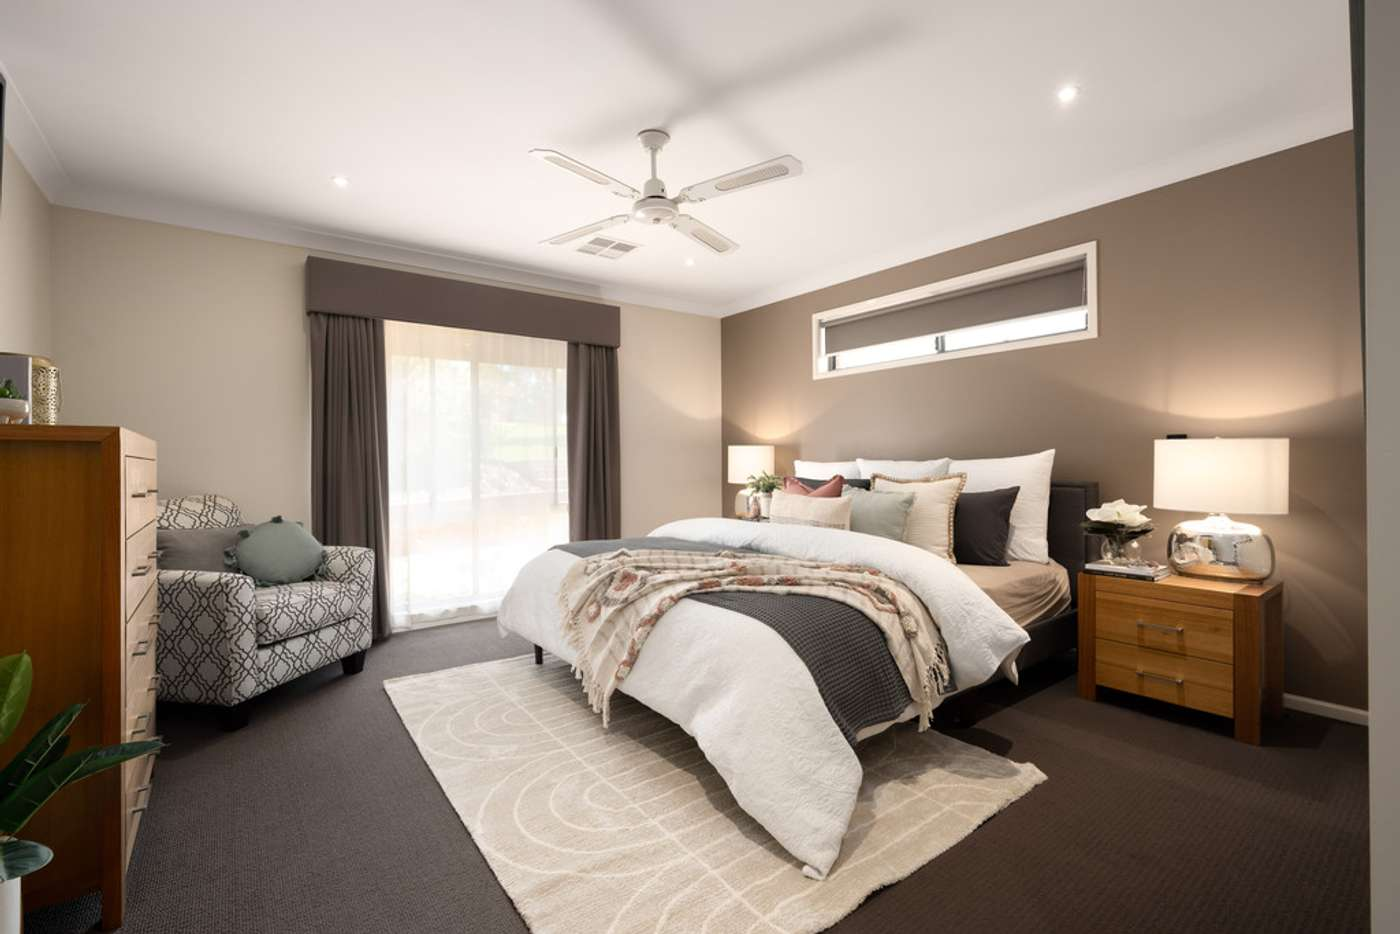 Sixth view of Homely house listing, 22 Stableford Place, Wodonga VIC 3690